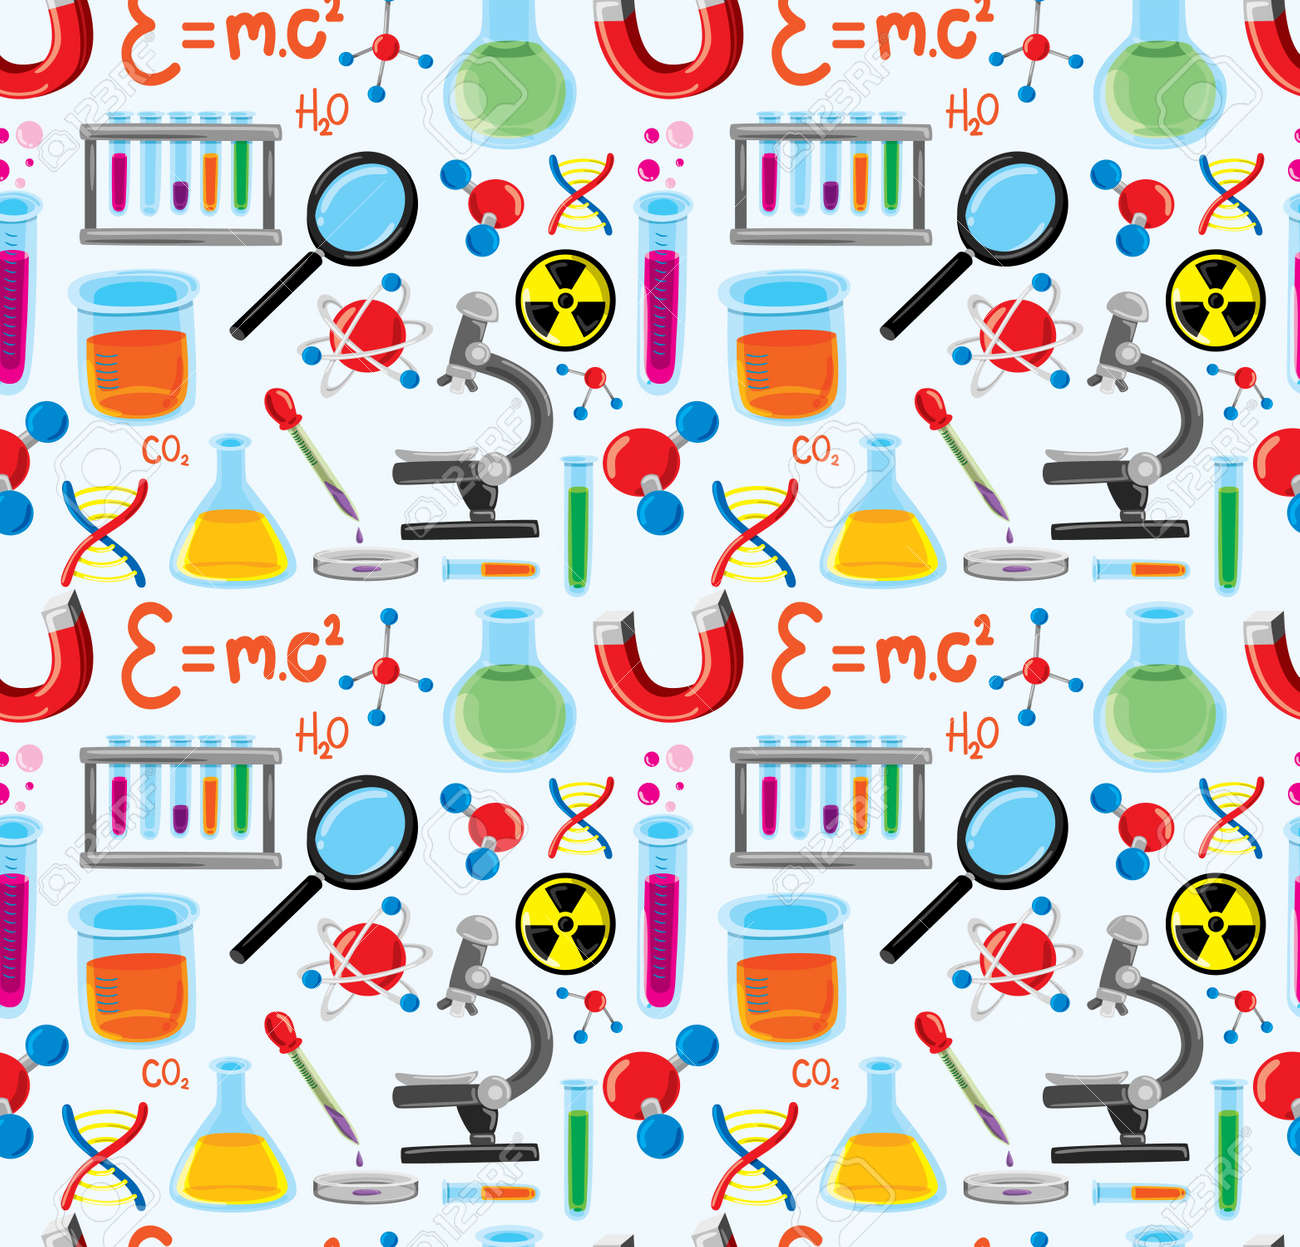 19,654 Chemistry Tube Stock Vector Illustration And Royalty Free ...